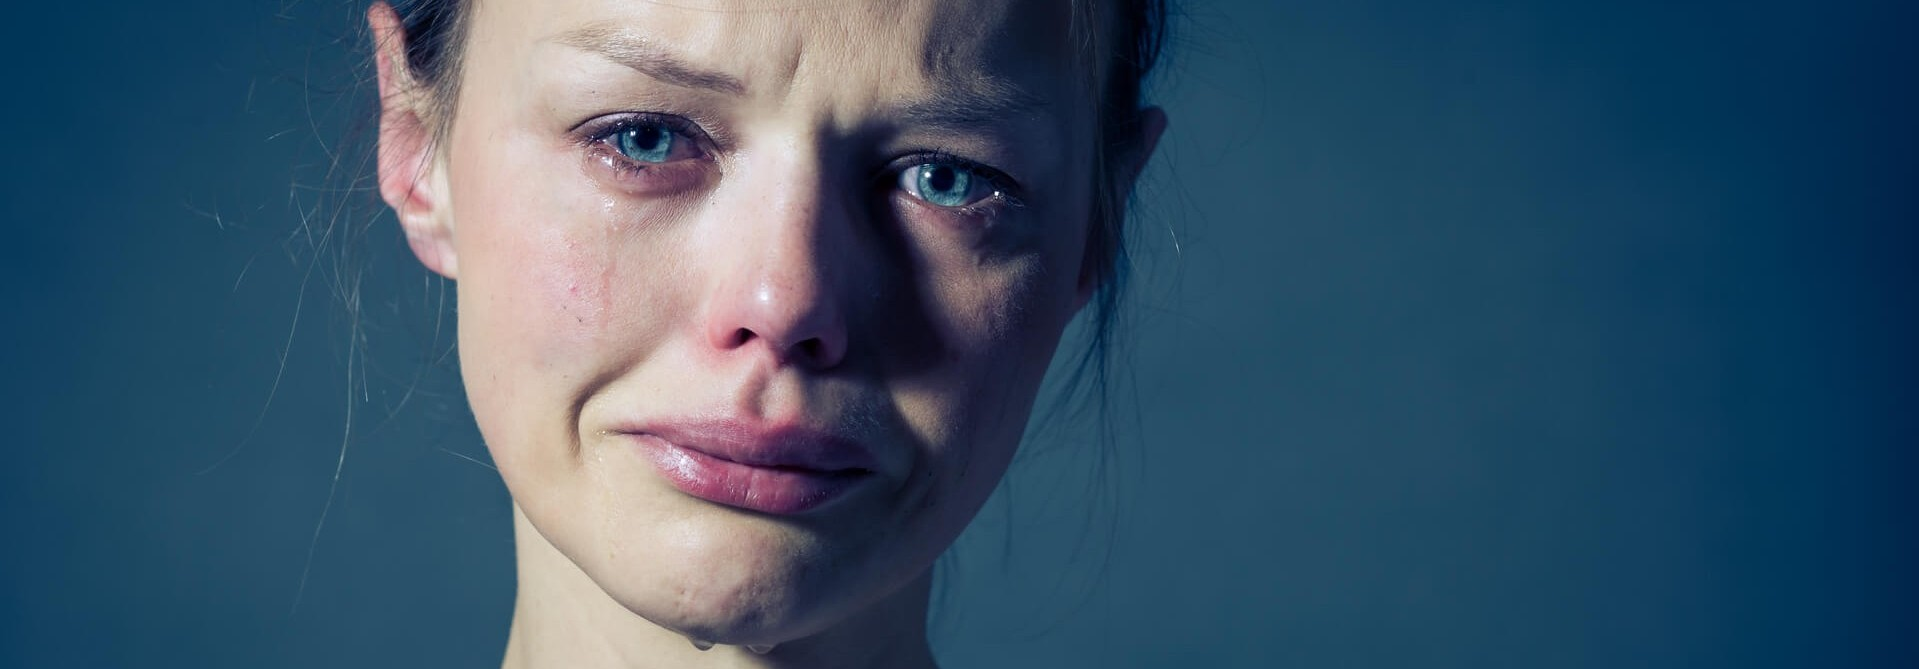 young woman in tears